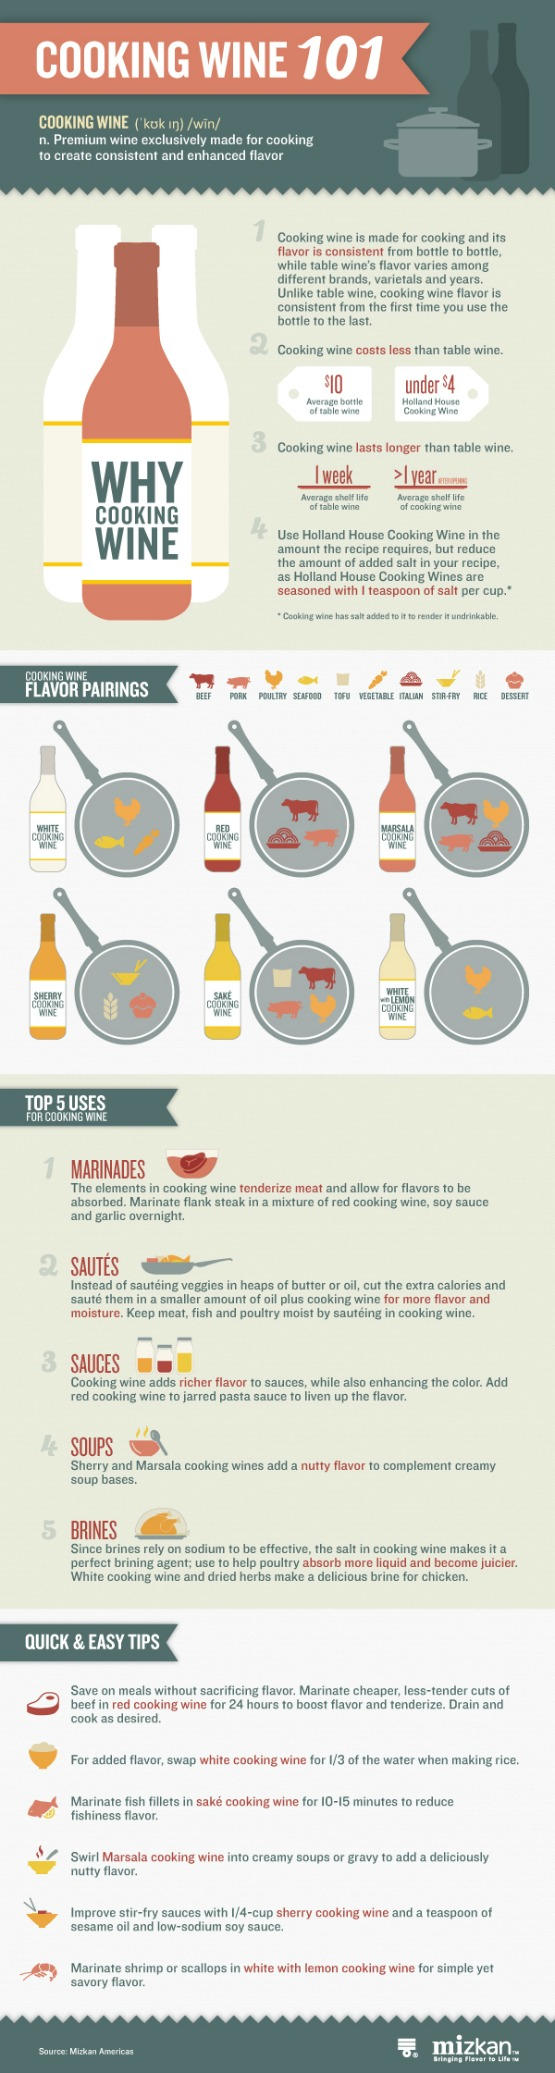 Using cooking wine